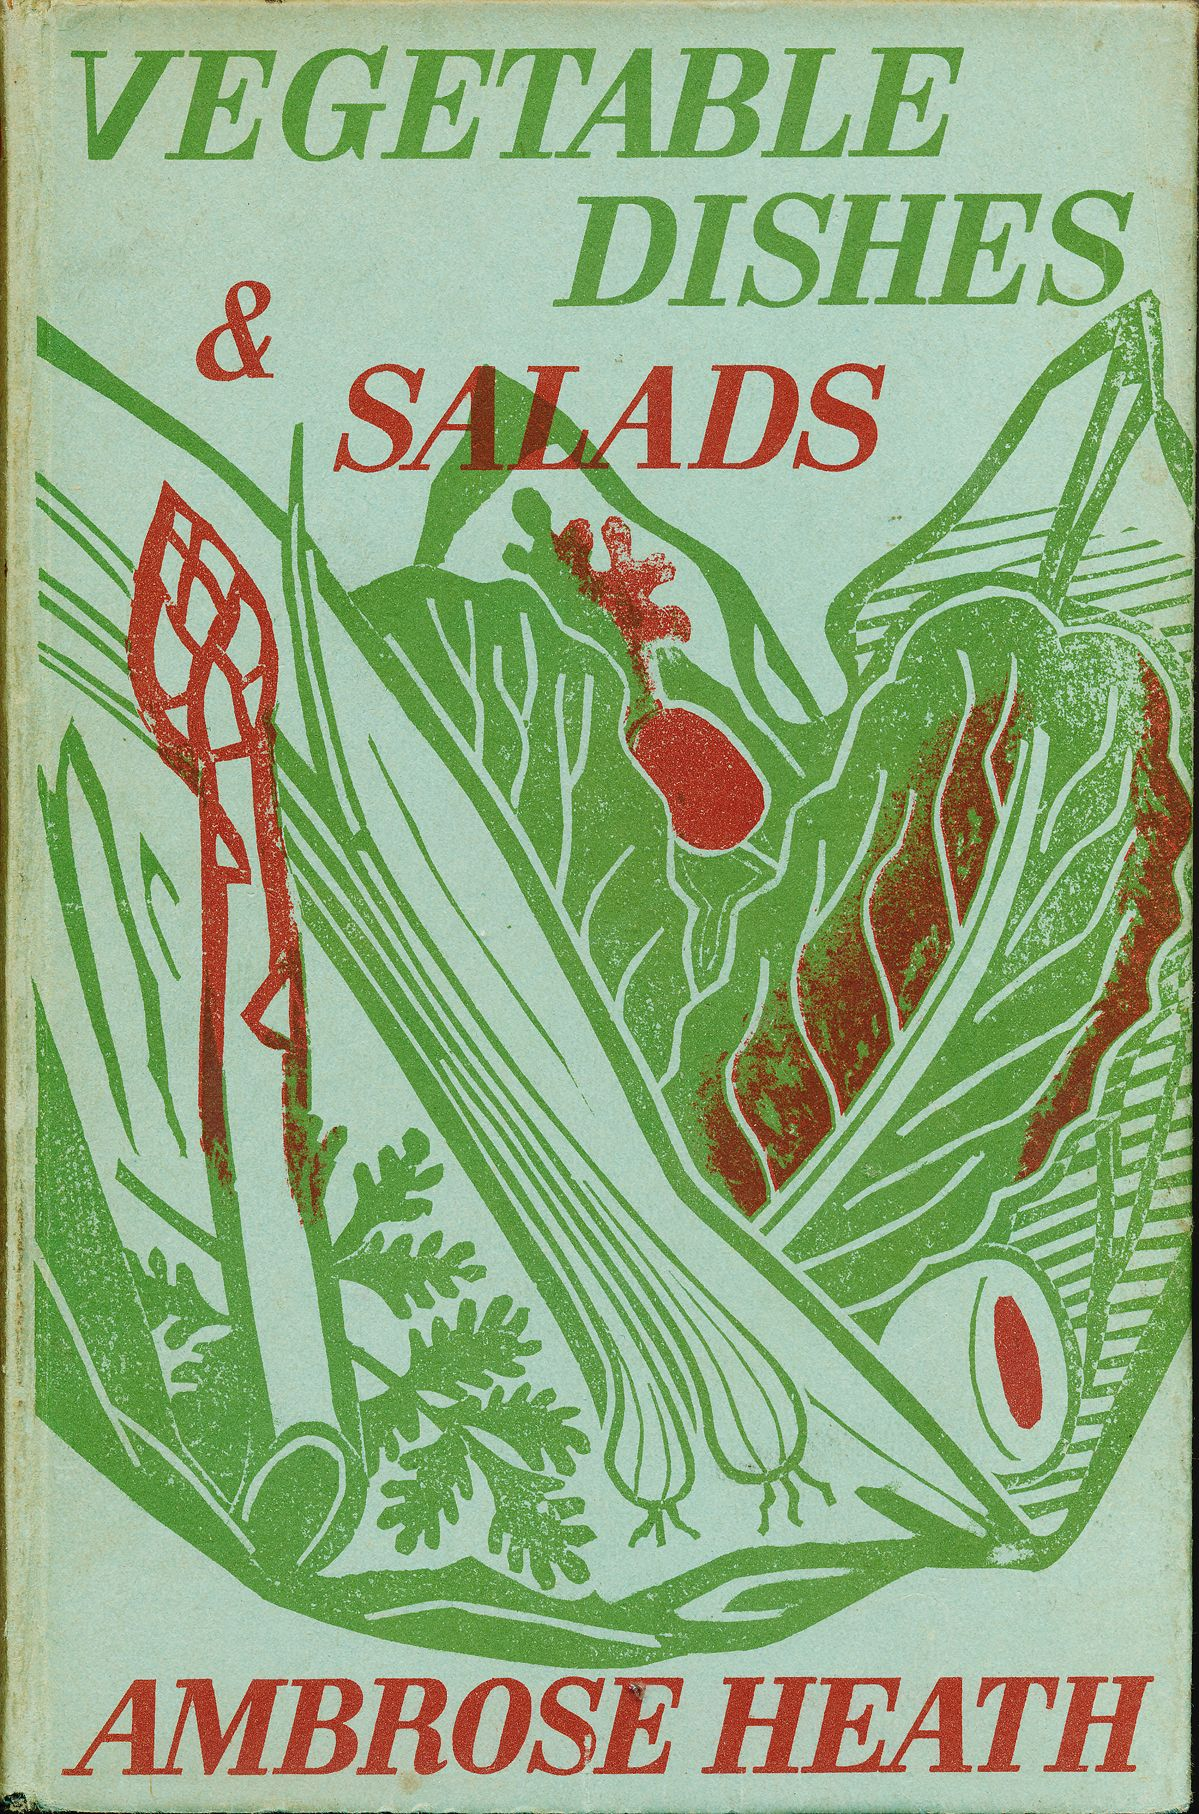 Food Book Cover Art : Edward bawden linocut cover design for vegetable dishes